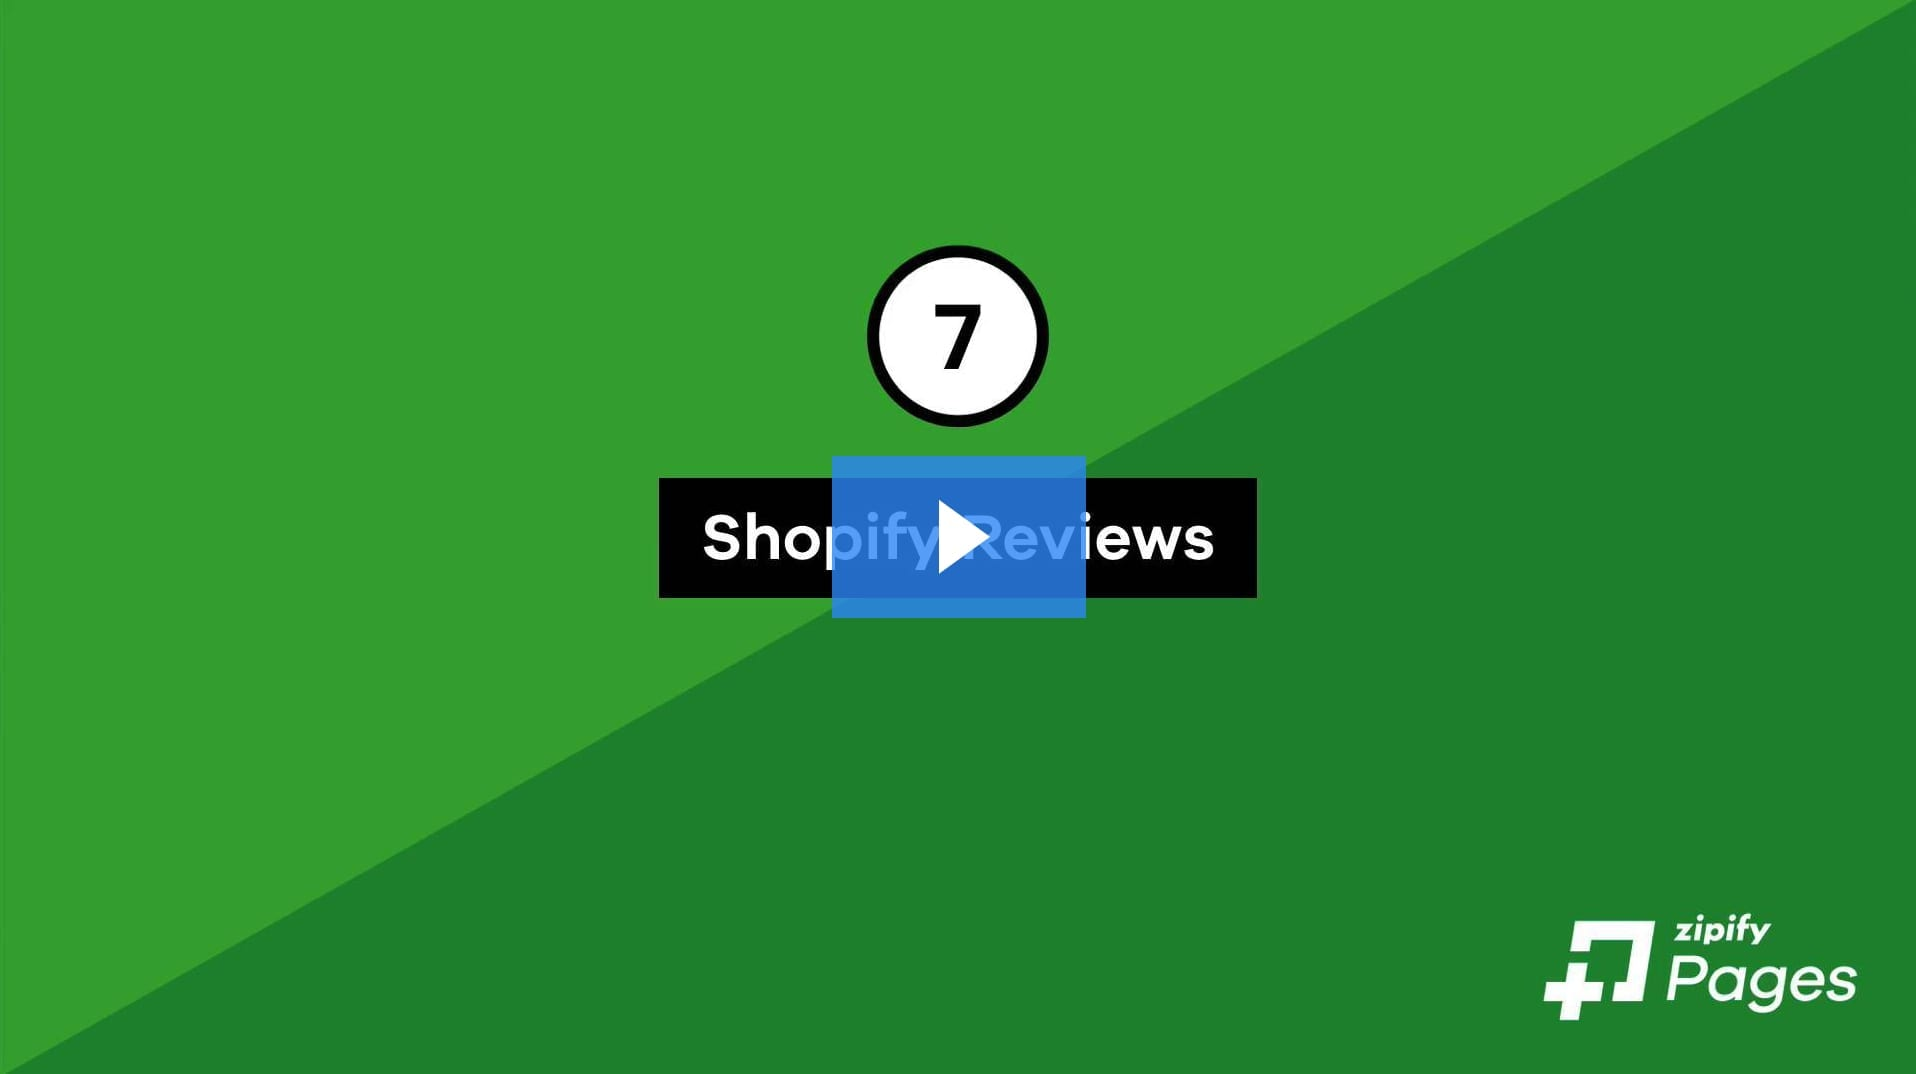 7 Shopify Reviews